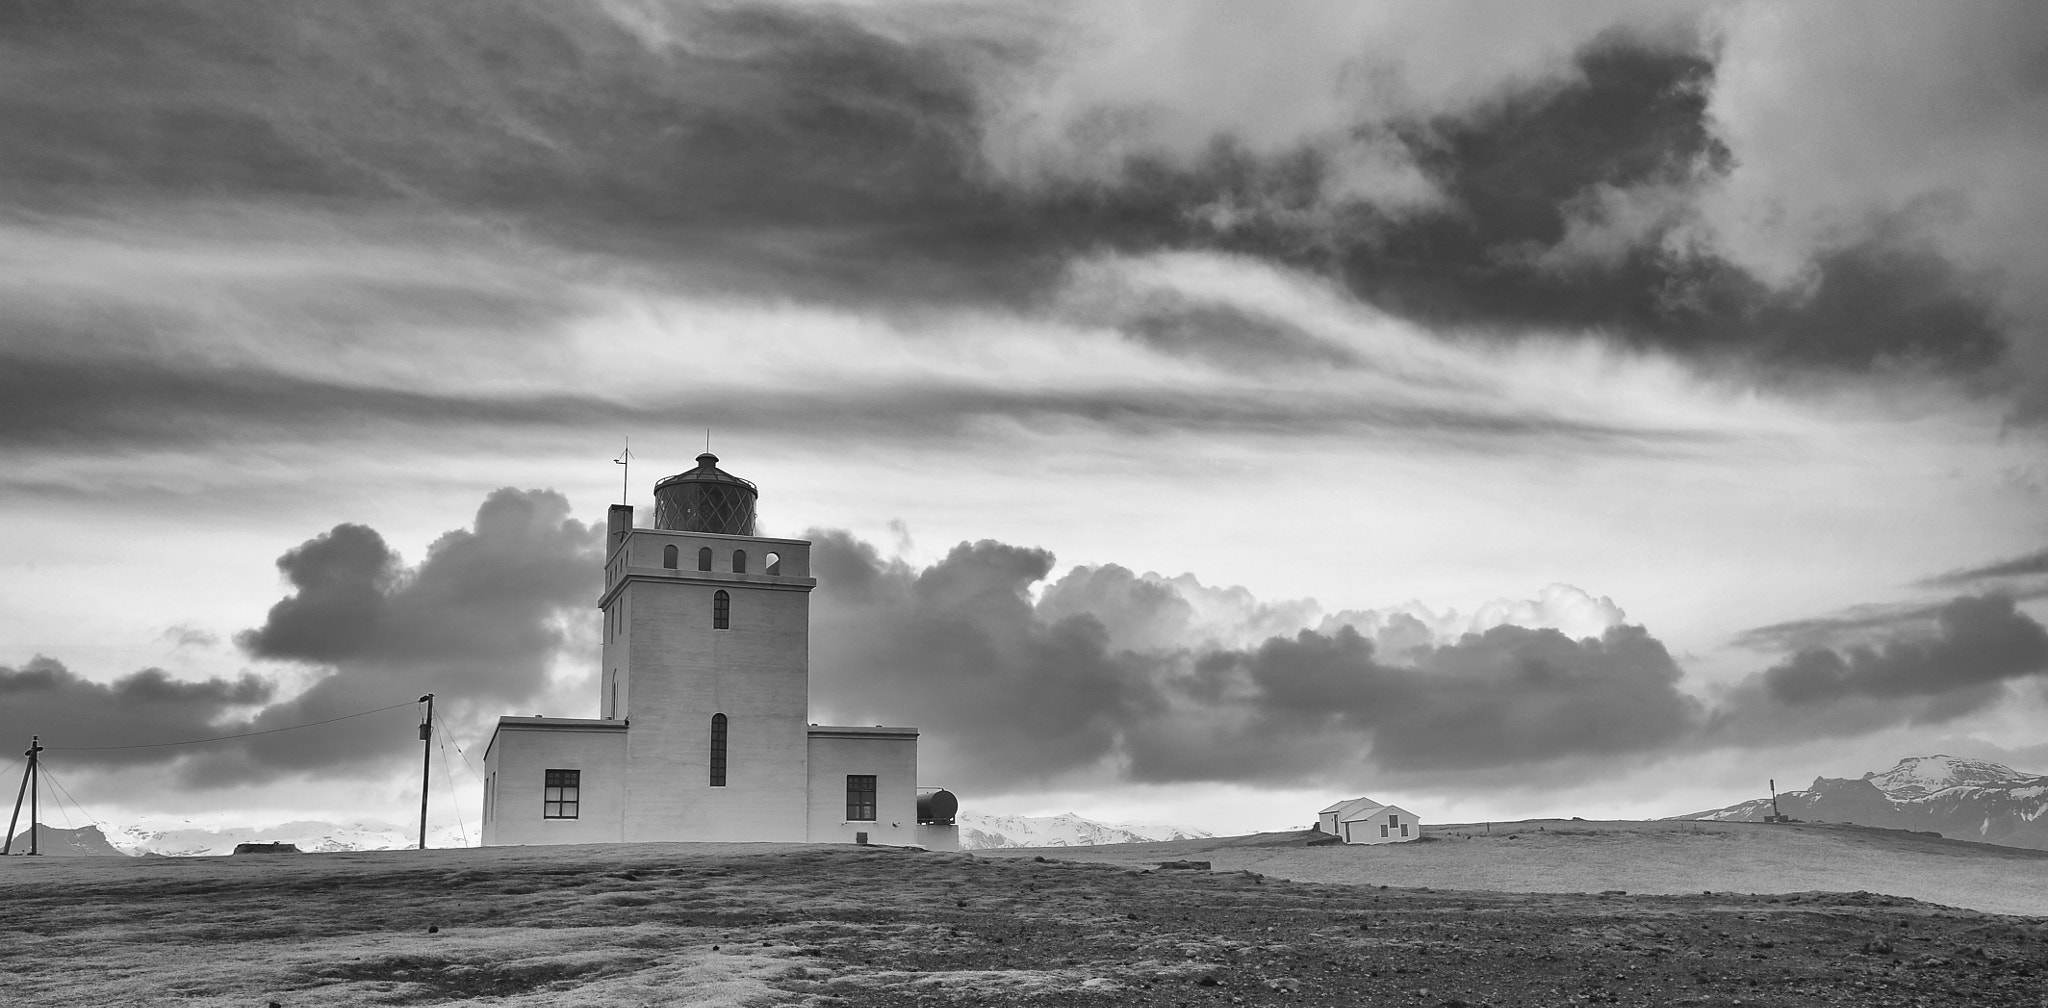 Photograph Lighthouse in Iceland by Andi Hauser on 500px